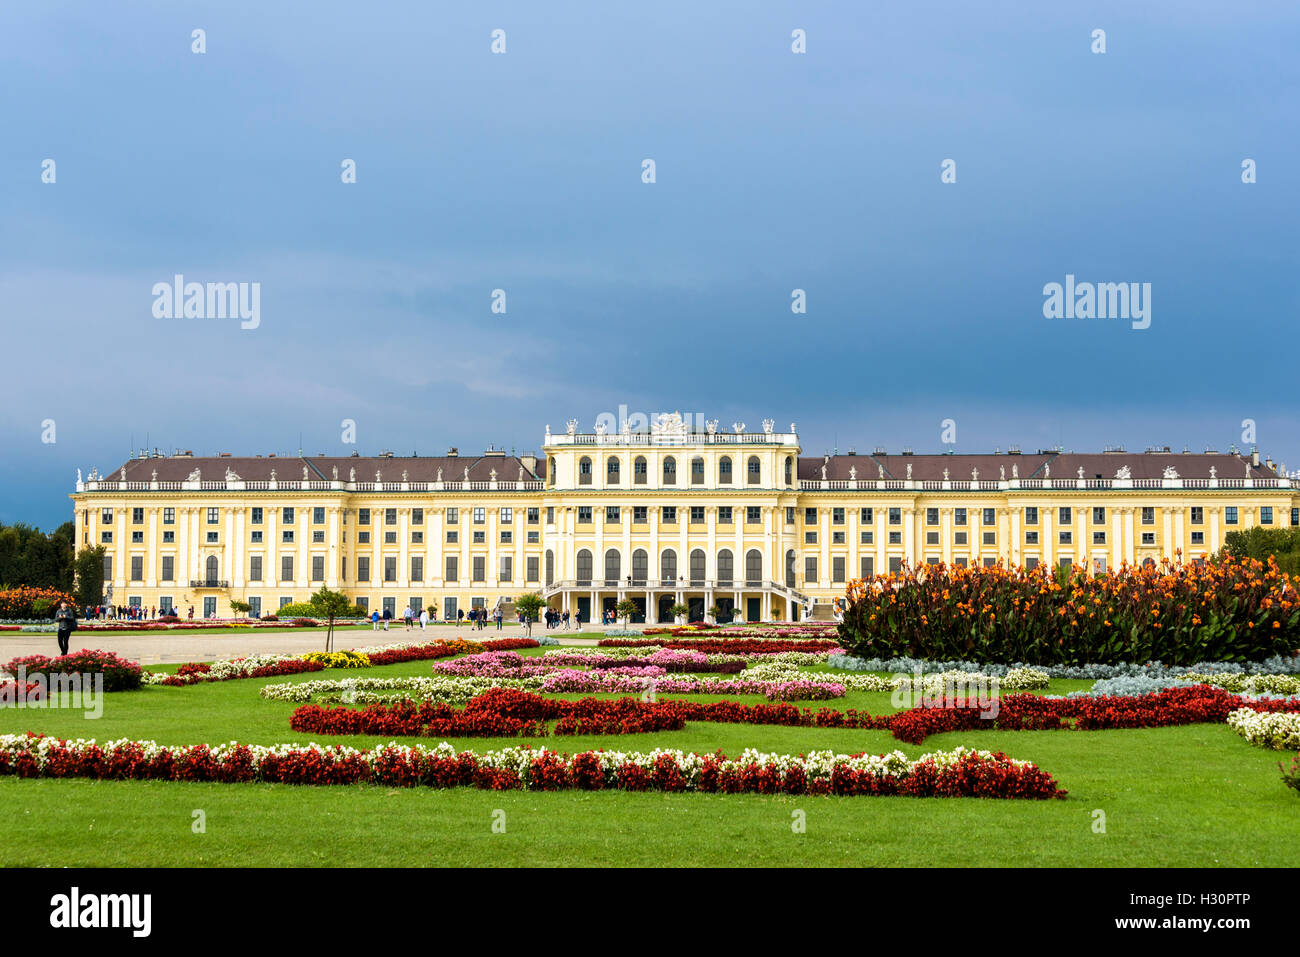 The gardens of Schonbrunn palace . - Stock Image